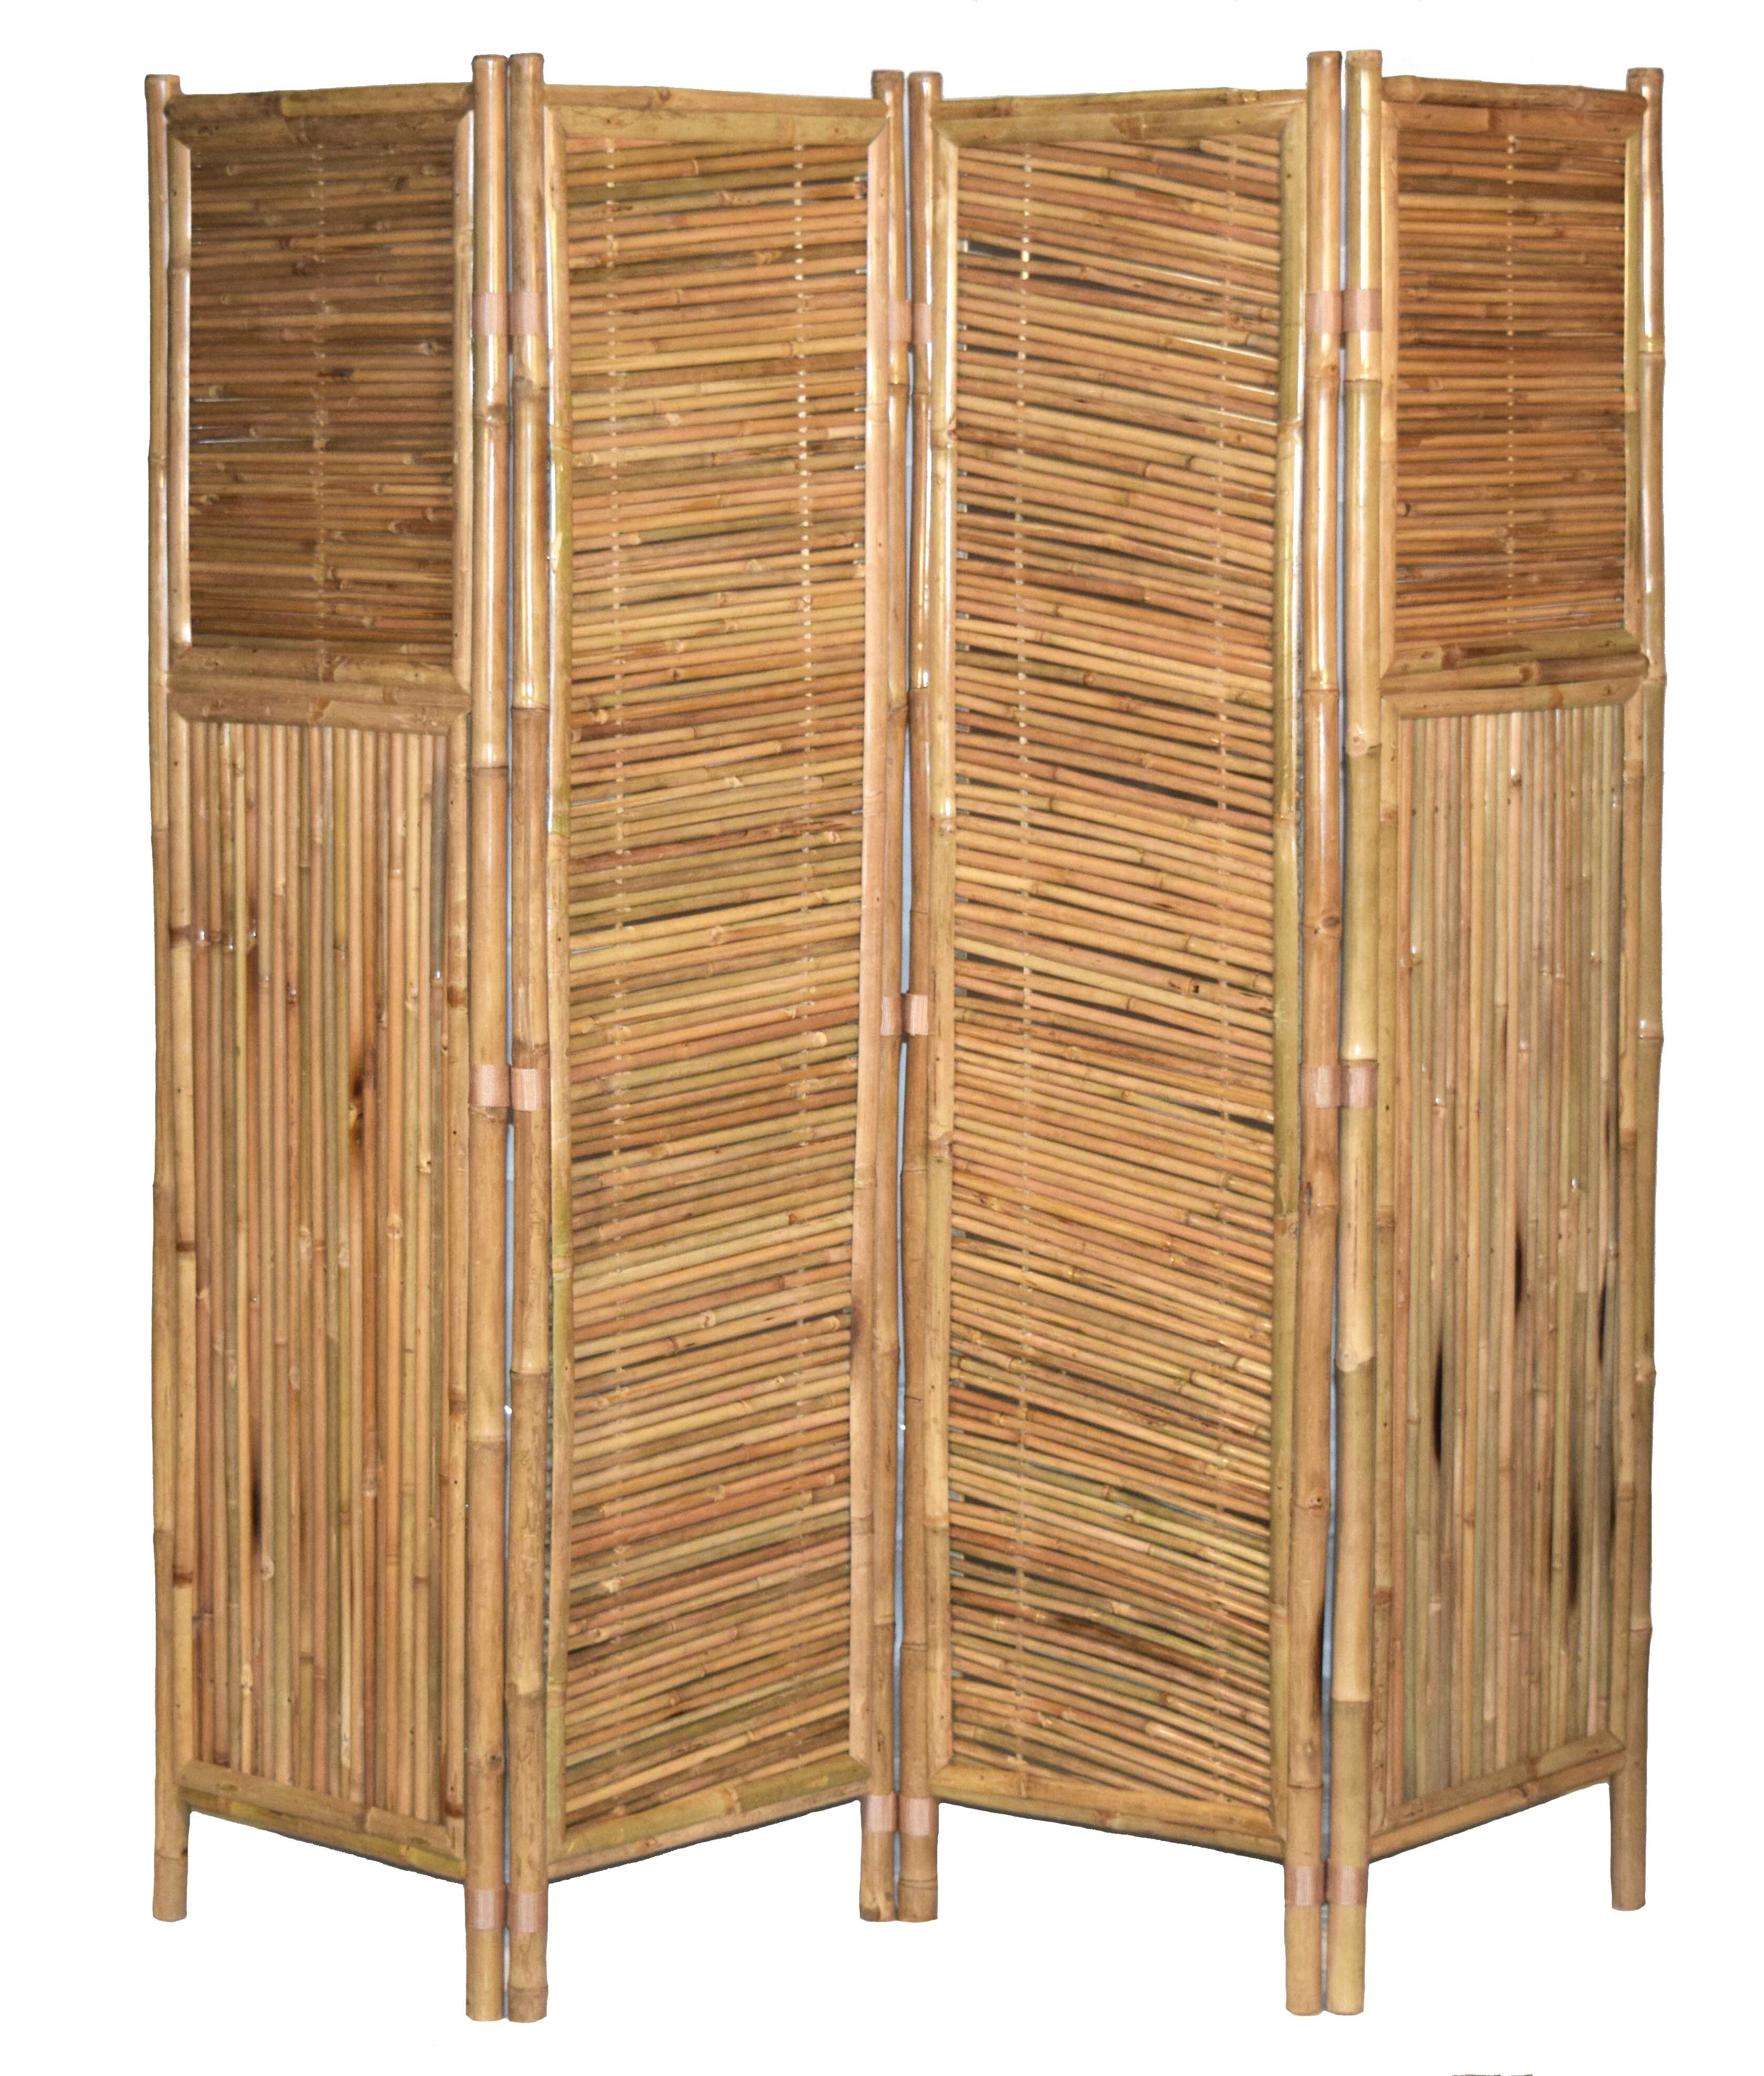 Screens Room Dividers New Bamboo 3 Panel Asian Organic Wood Screen Room Divider Indoor Outdoor 63 X48 Home Garden Hotepconsultants Com